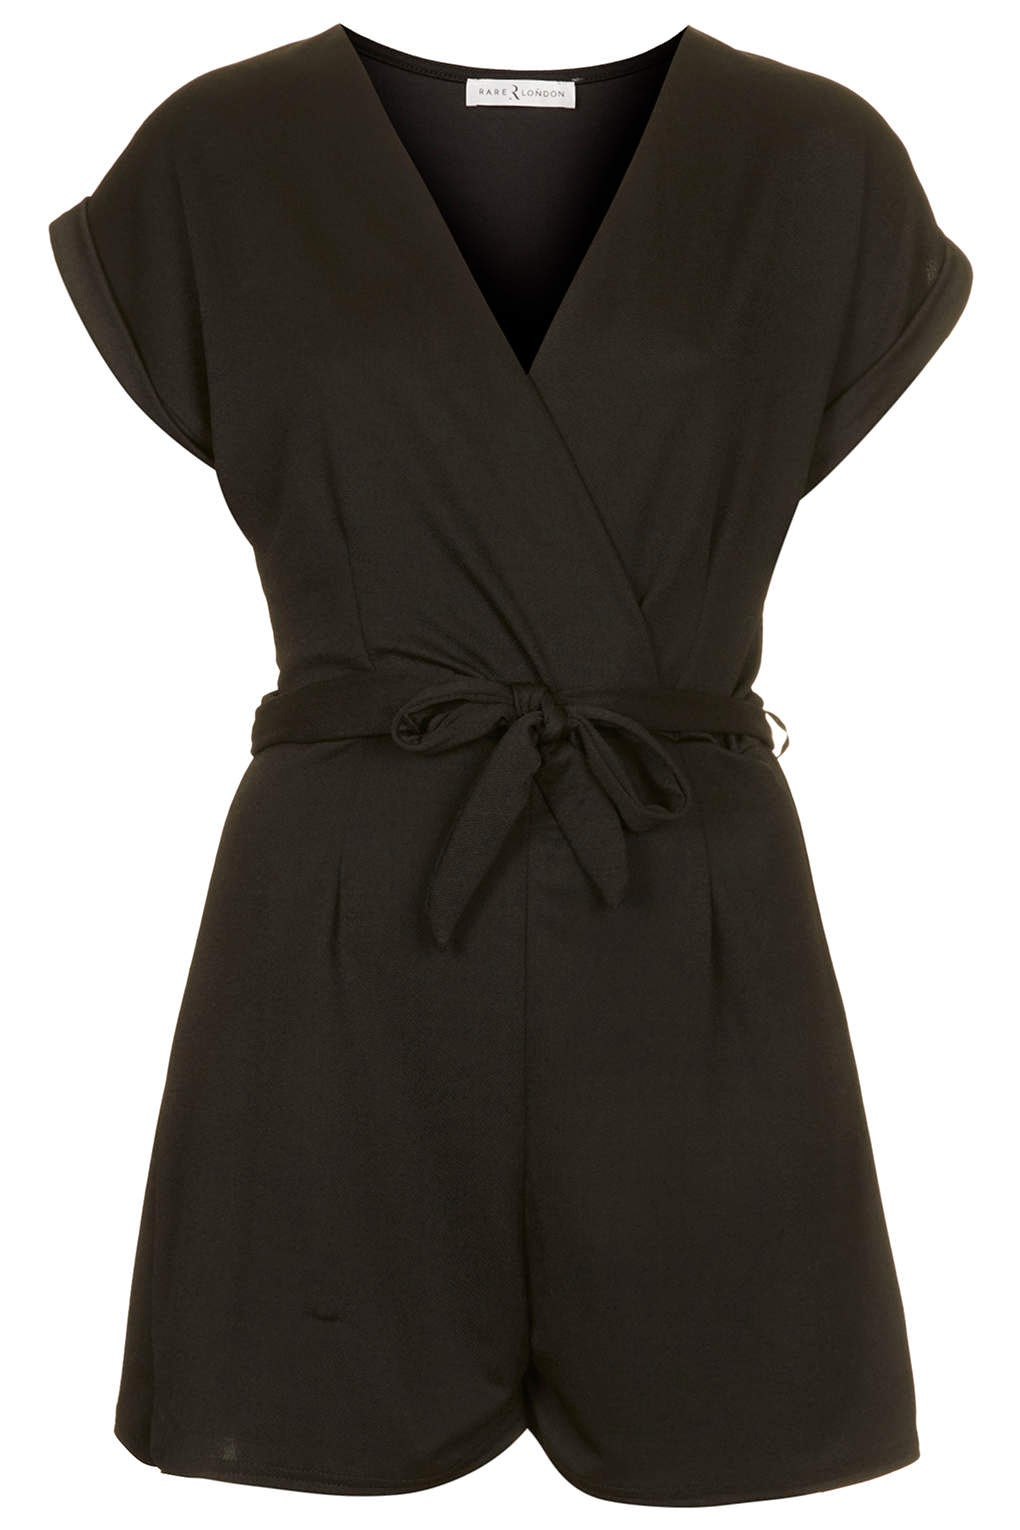 black tie playsuit